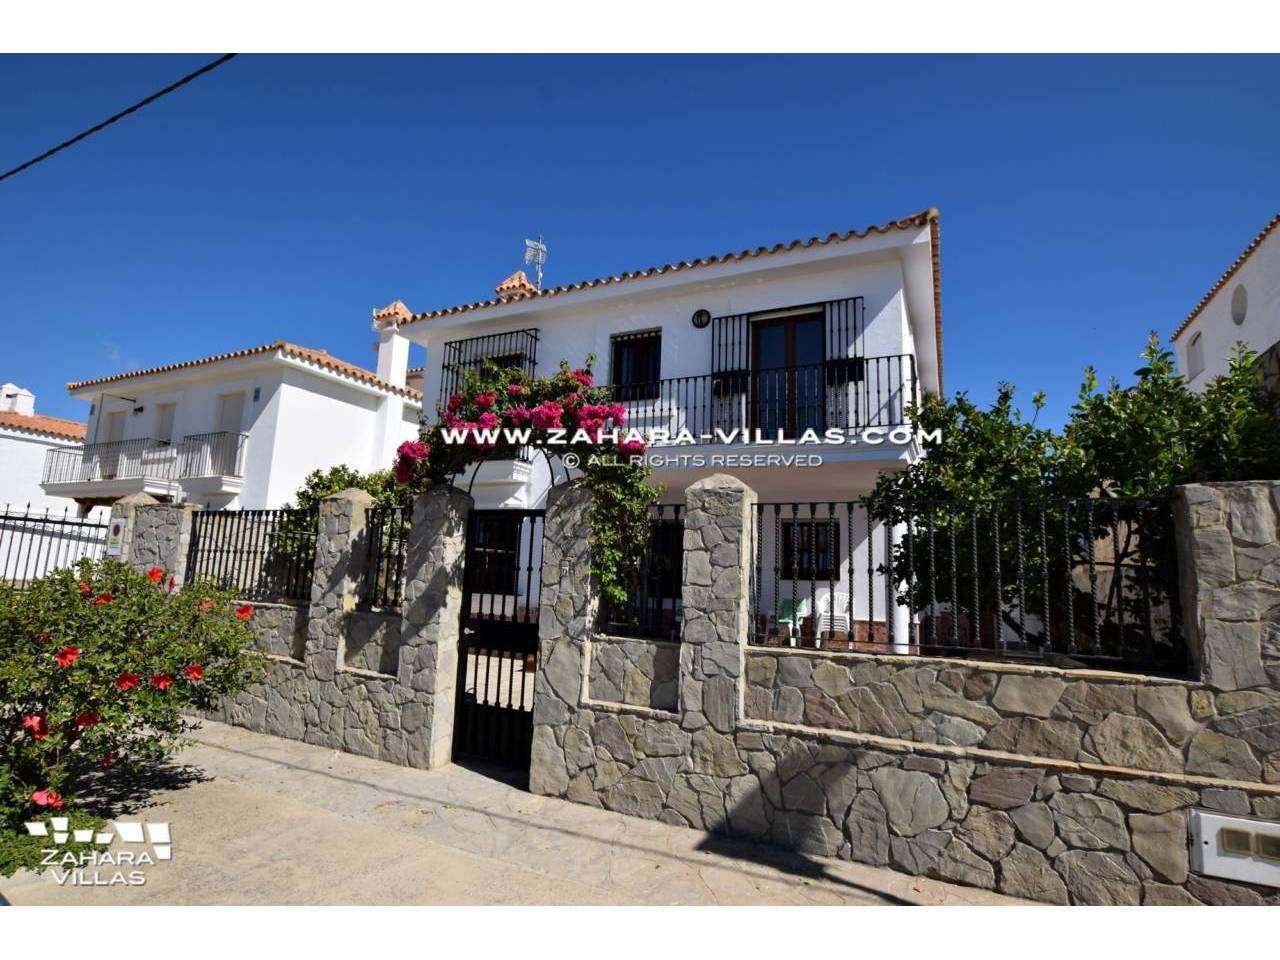 Imagen 1 de House for sale on the front beach, with sea views in Zahara de los Atunes